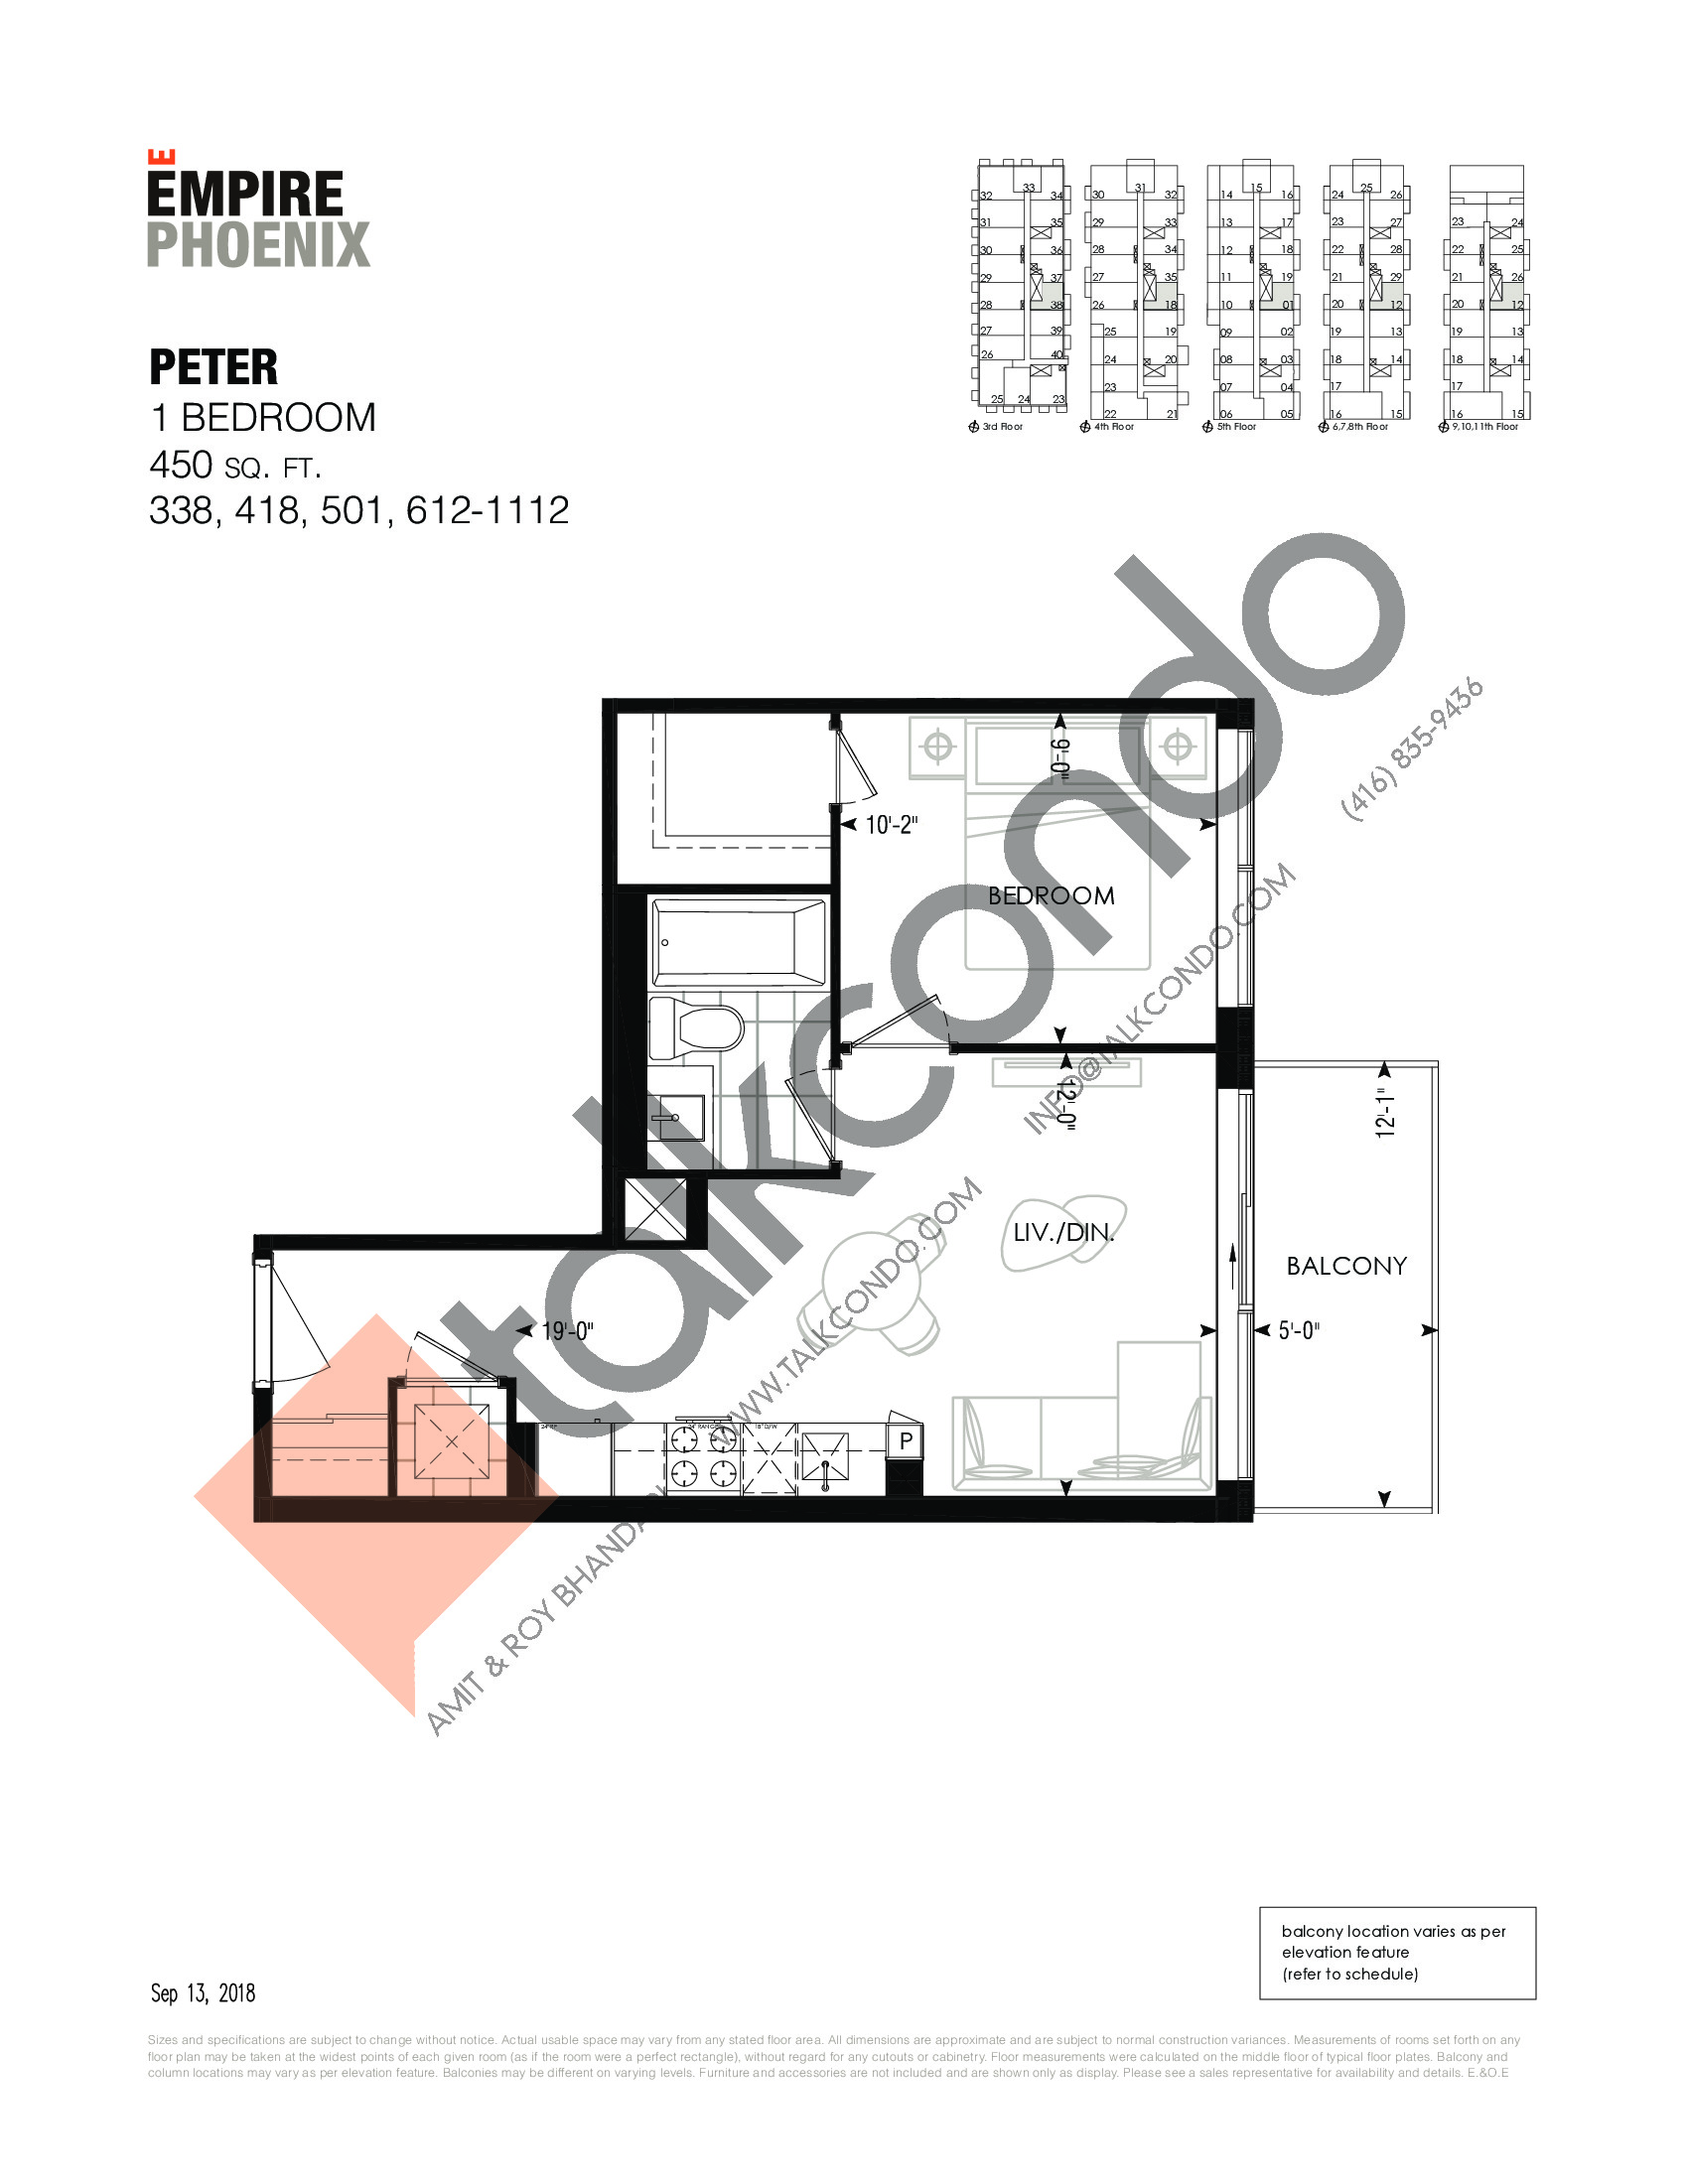 Peter Floor Plan at Empire Phoenix Phase 2 Condos - 450 sq.ft